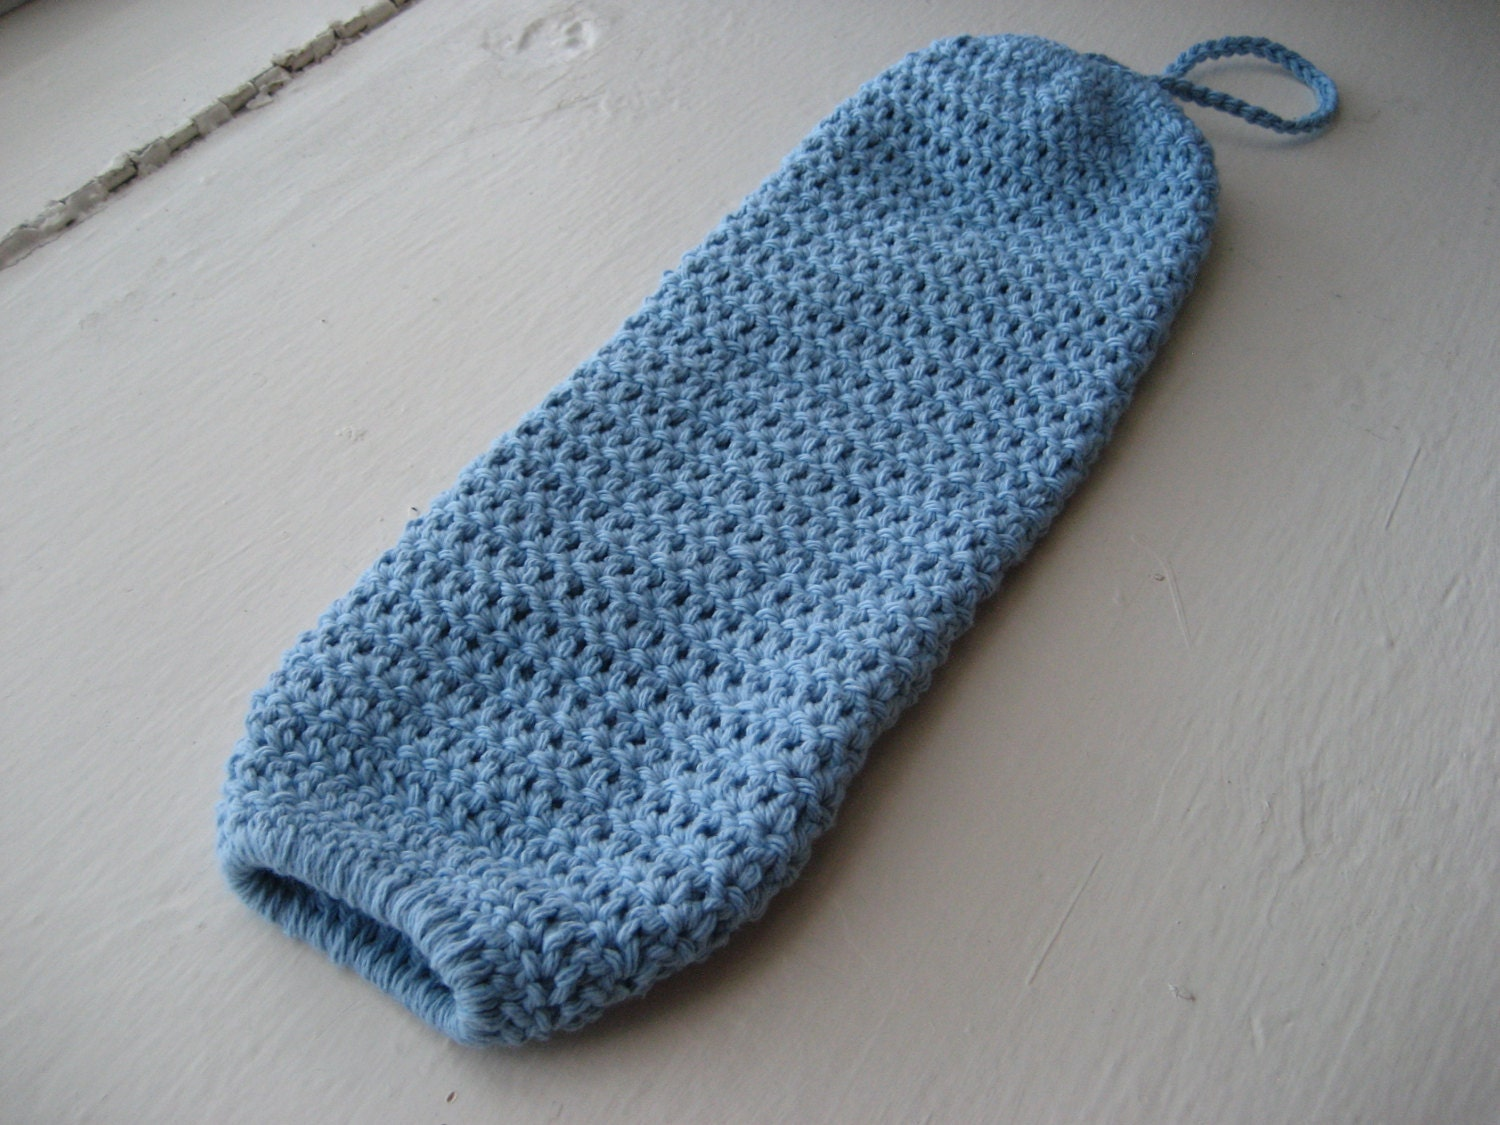 Crochet Bag Pattern Design : Crocheted Hanging Grocery Bag Holder Light Blue